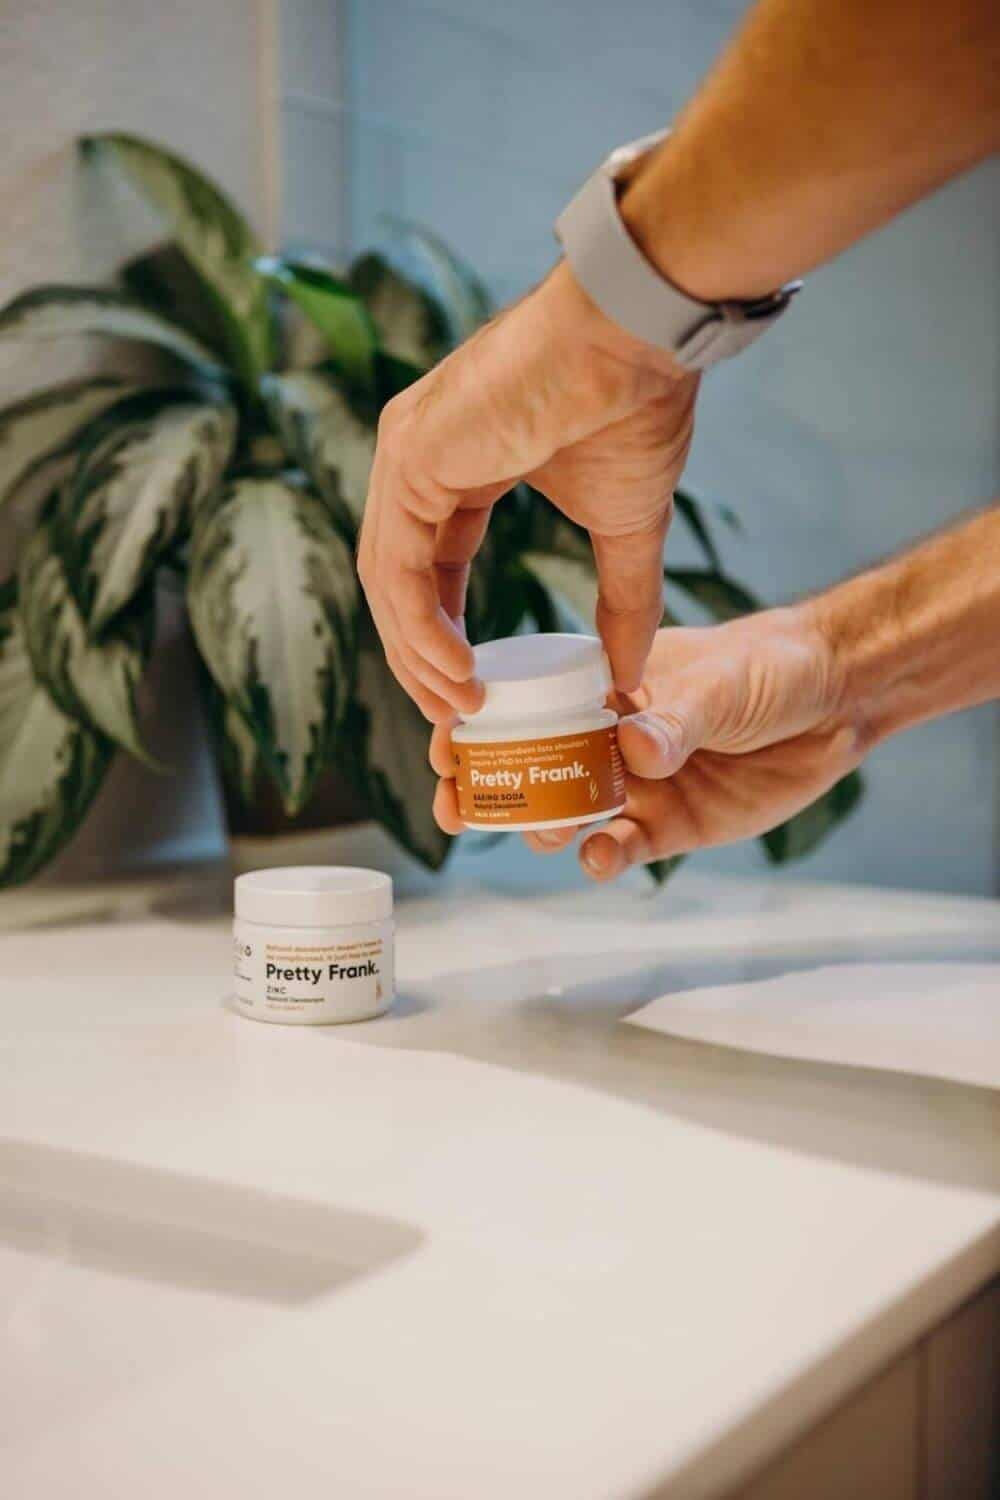 We're meant to sweat. So finding the best natural and environmentally friendly deodorant, one that really works and is actually natural is pretty important! Here's our list... Image by Pretty Frank #environmentallfriendlydeodorant #sustainablejungle